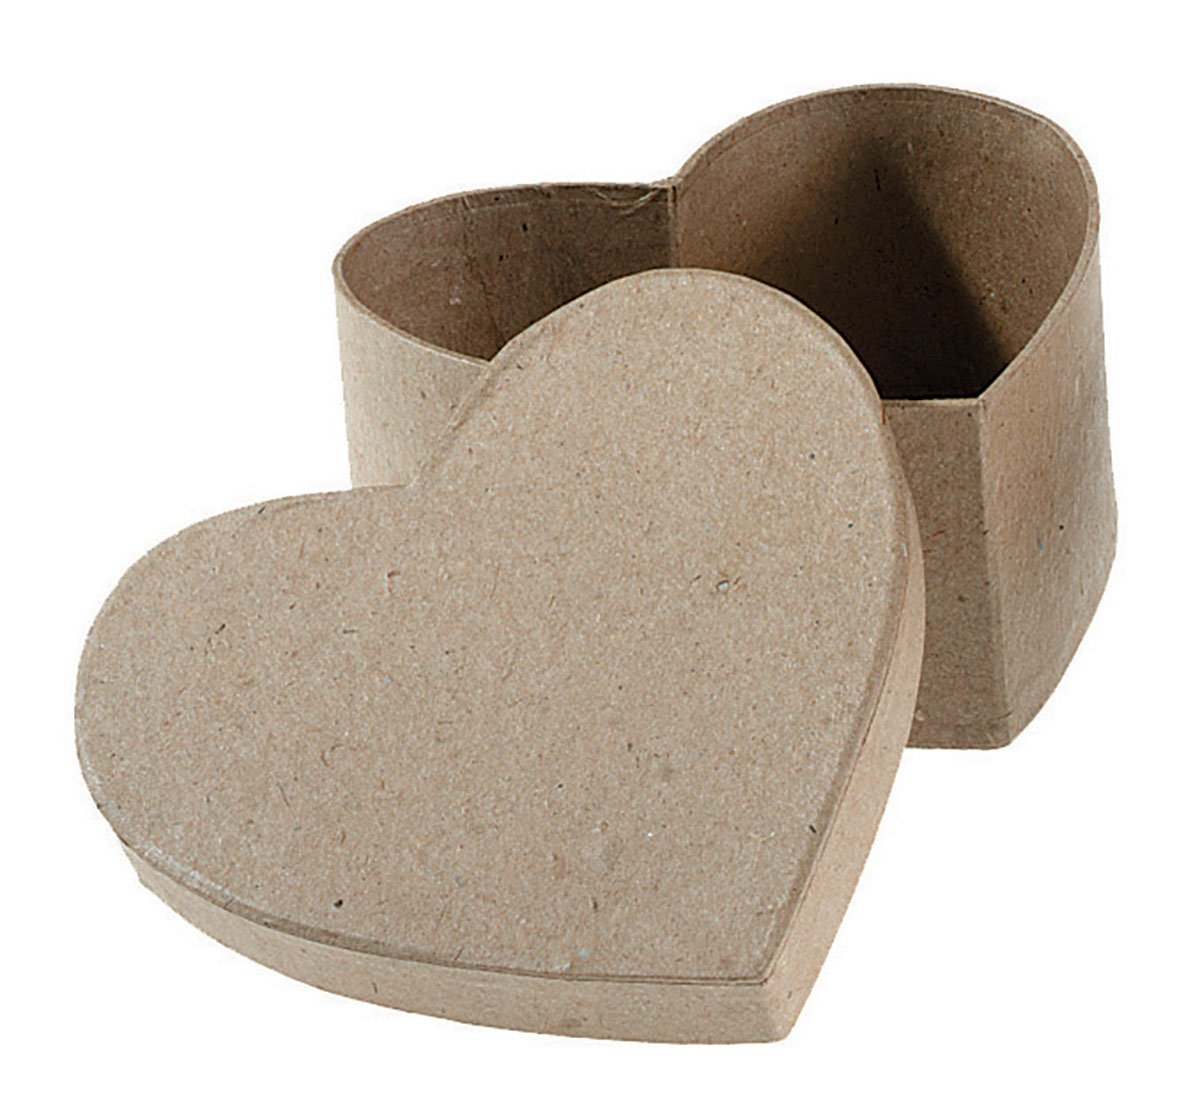 Darice Paper Mache Heart Box with Lid, 4.5 by 4.5 by 2-Inch 2833-32